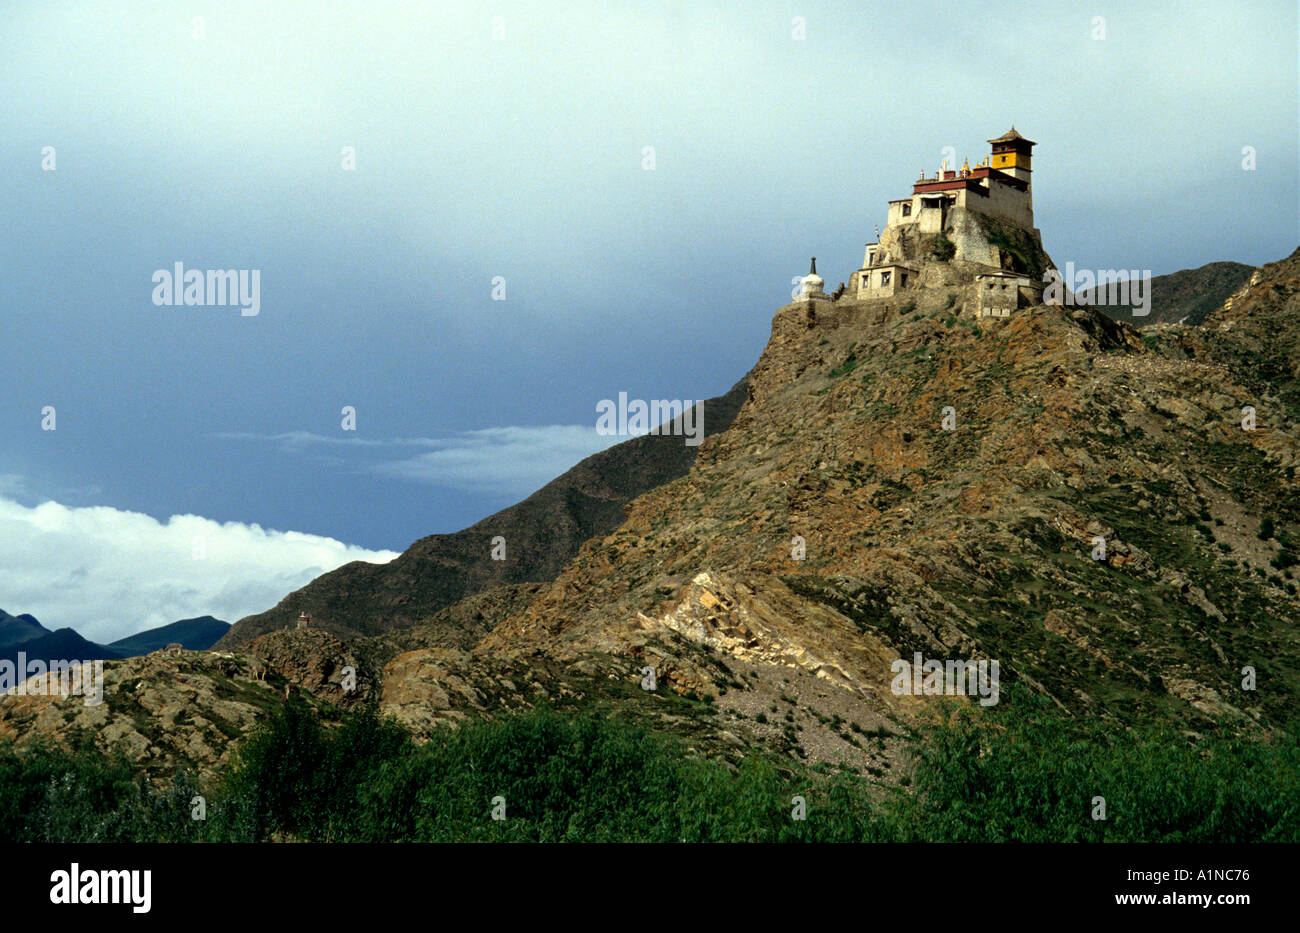 The Yambulagang the oldest wooden building in Tibet near Gyantse - Stock Image